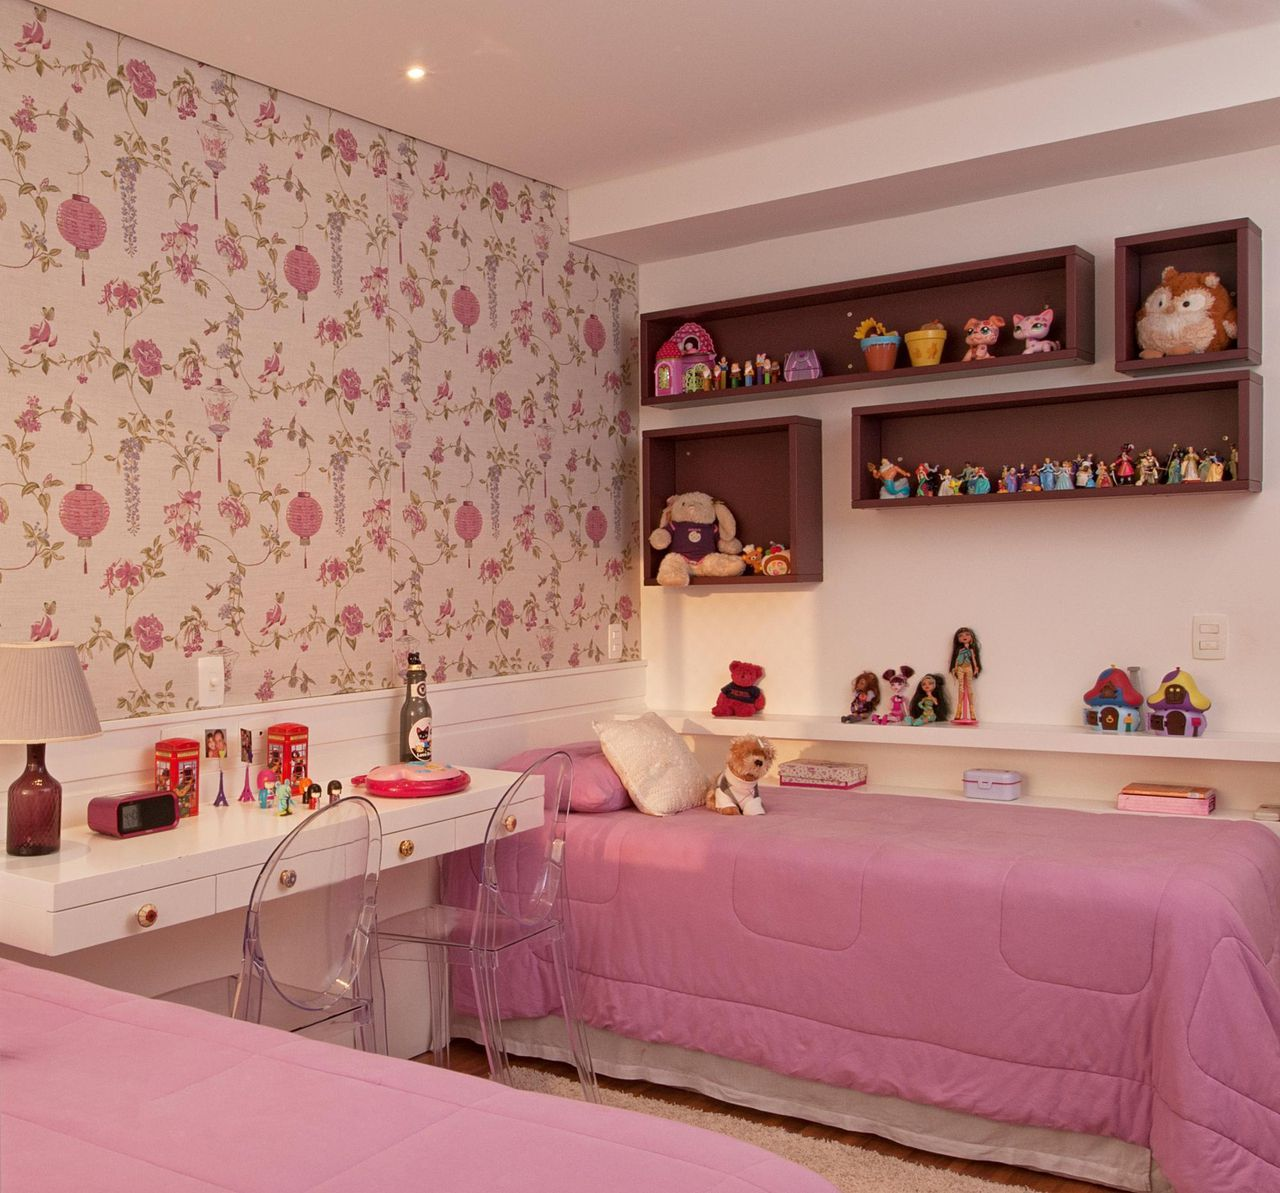 Decorating Ideas for Kids Rooms (6)